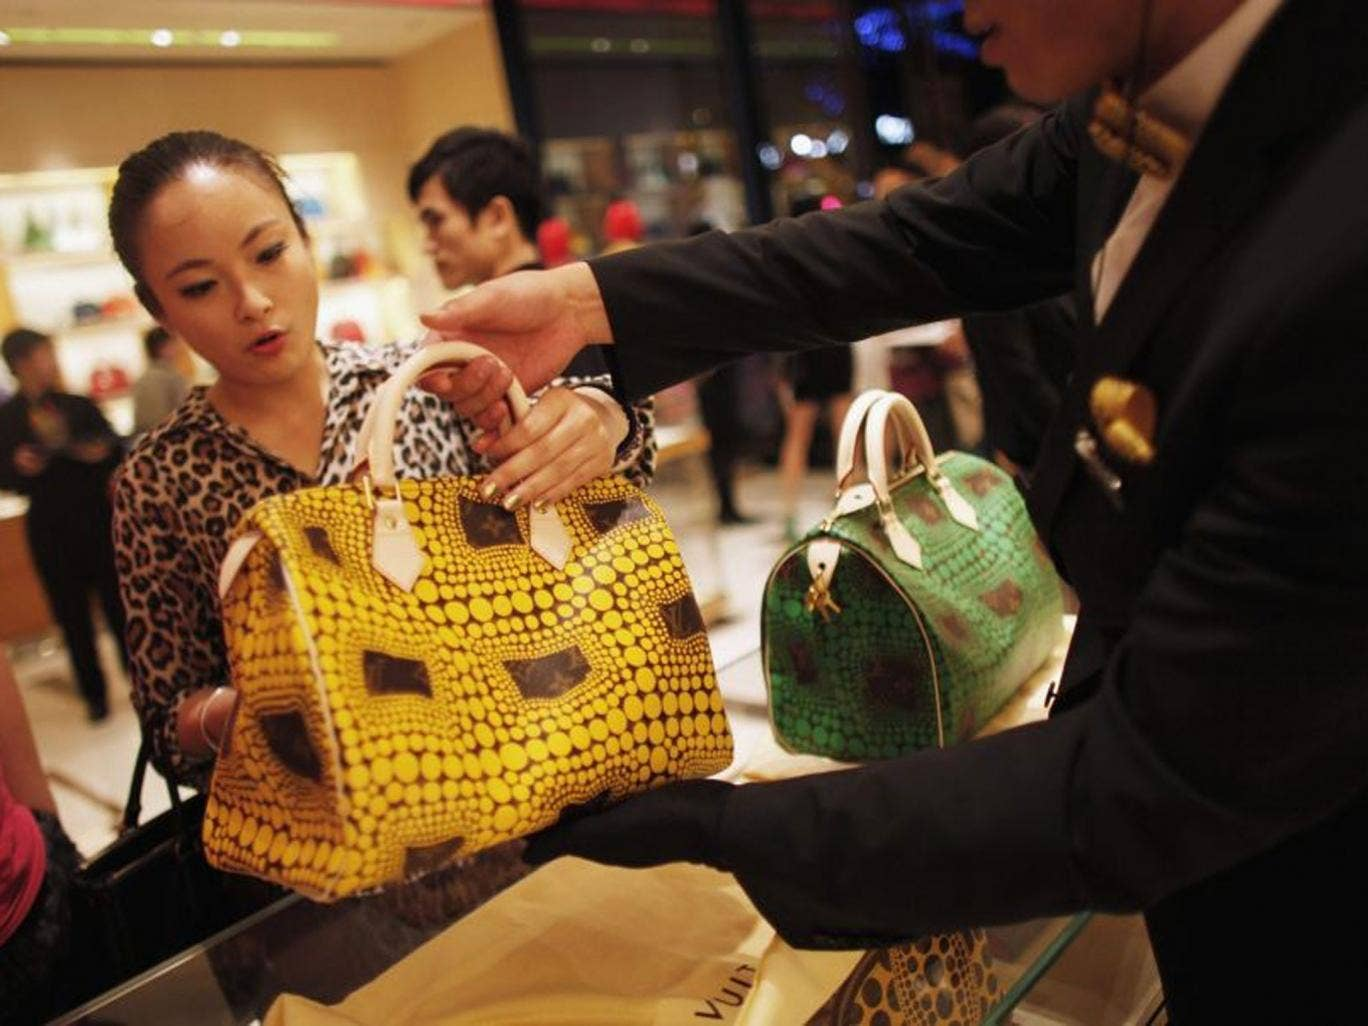 According to a recent estimate, there are now a million millionaires in China